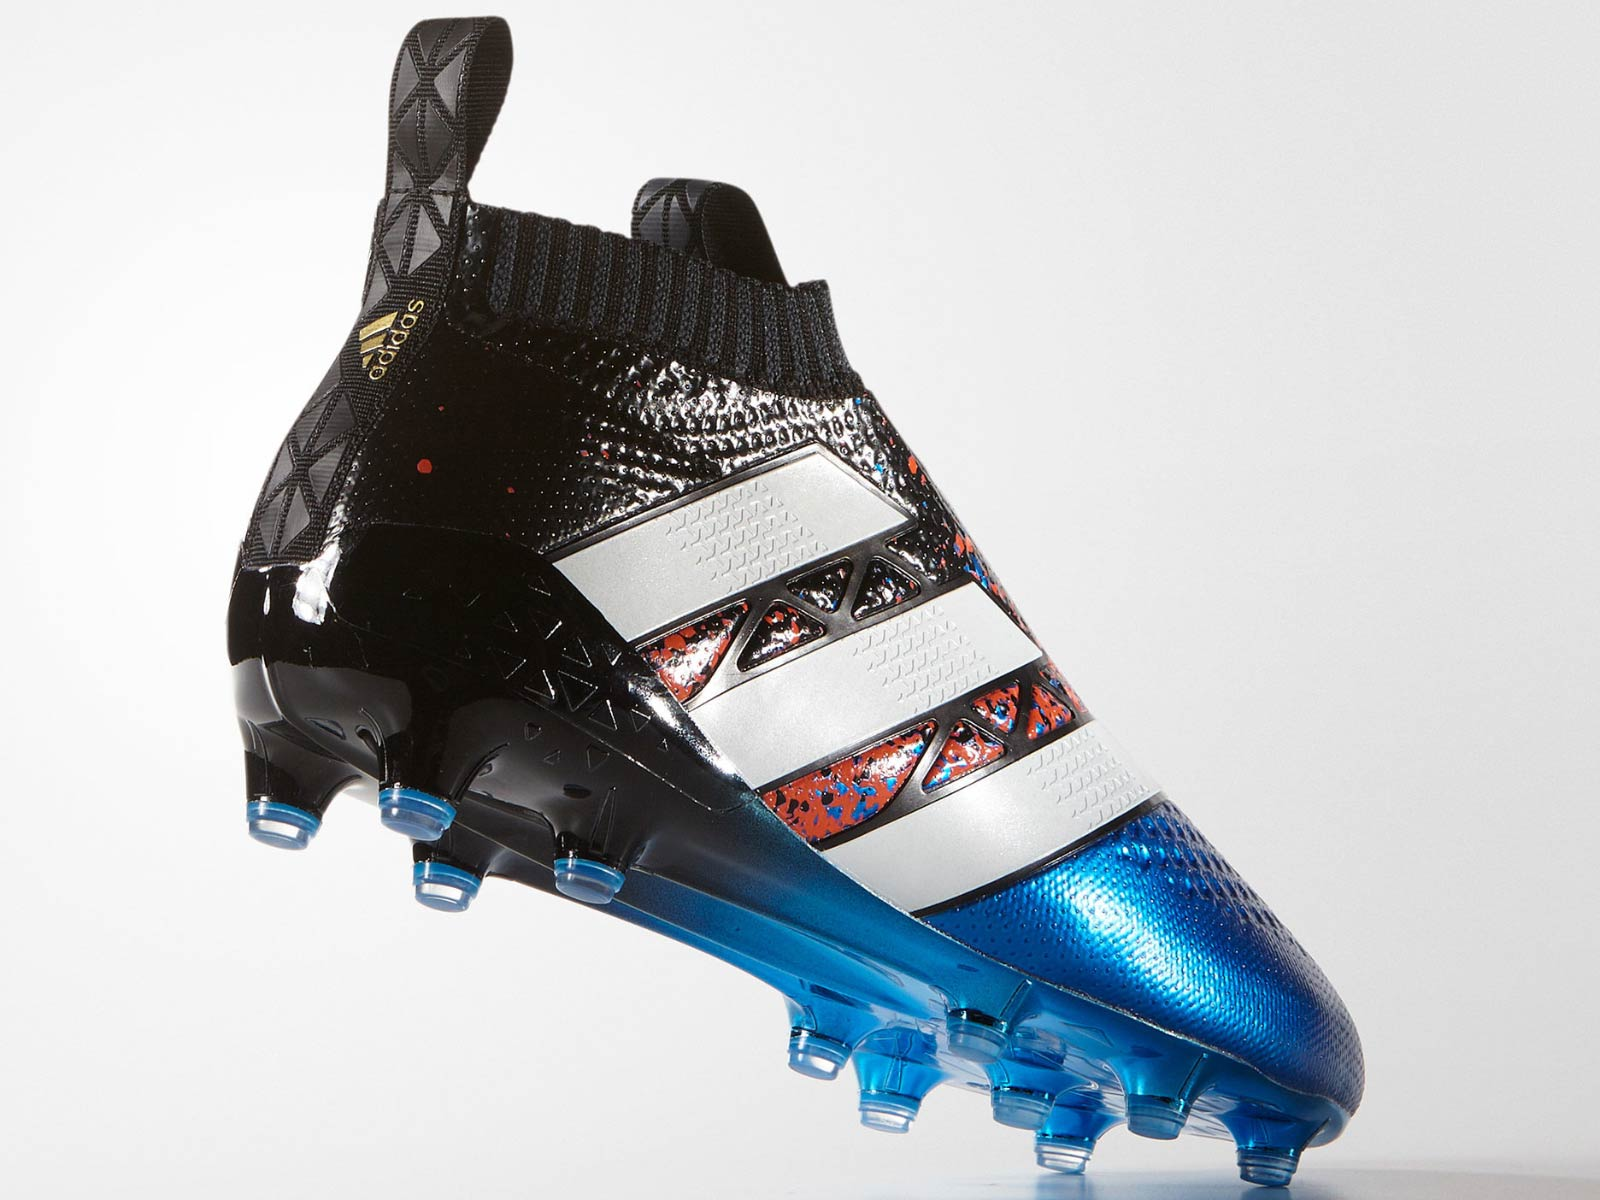 Stunning Adidas Ace 16+ PureControl Paris Pack Boots ...